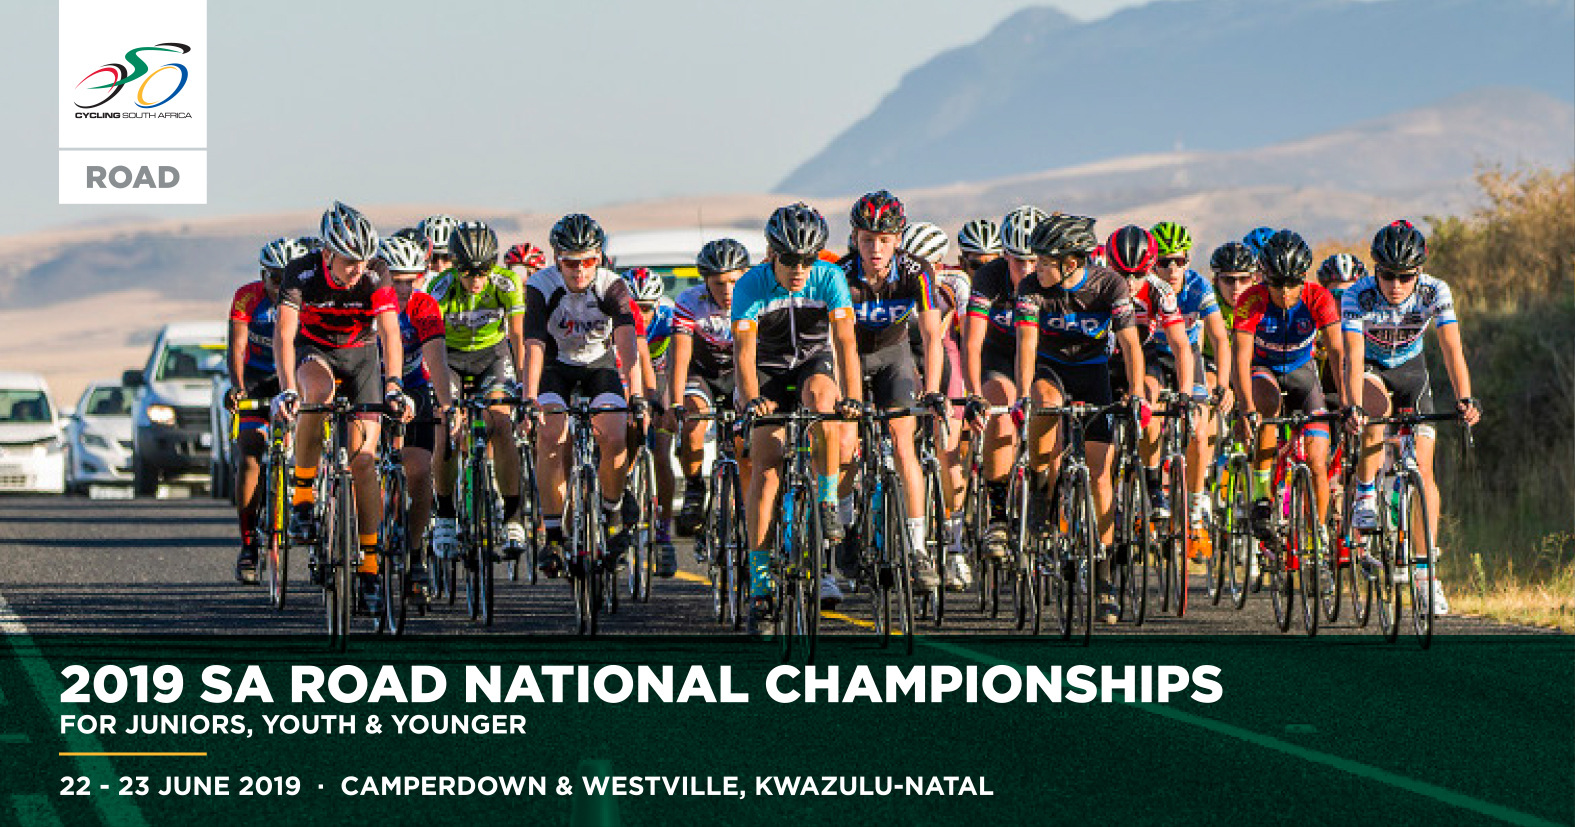 CSA_SA Jnr Road Champs Rectangle.jpg